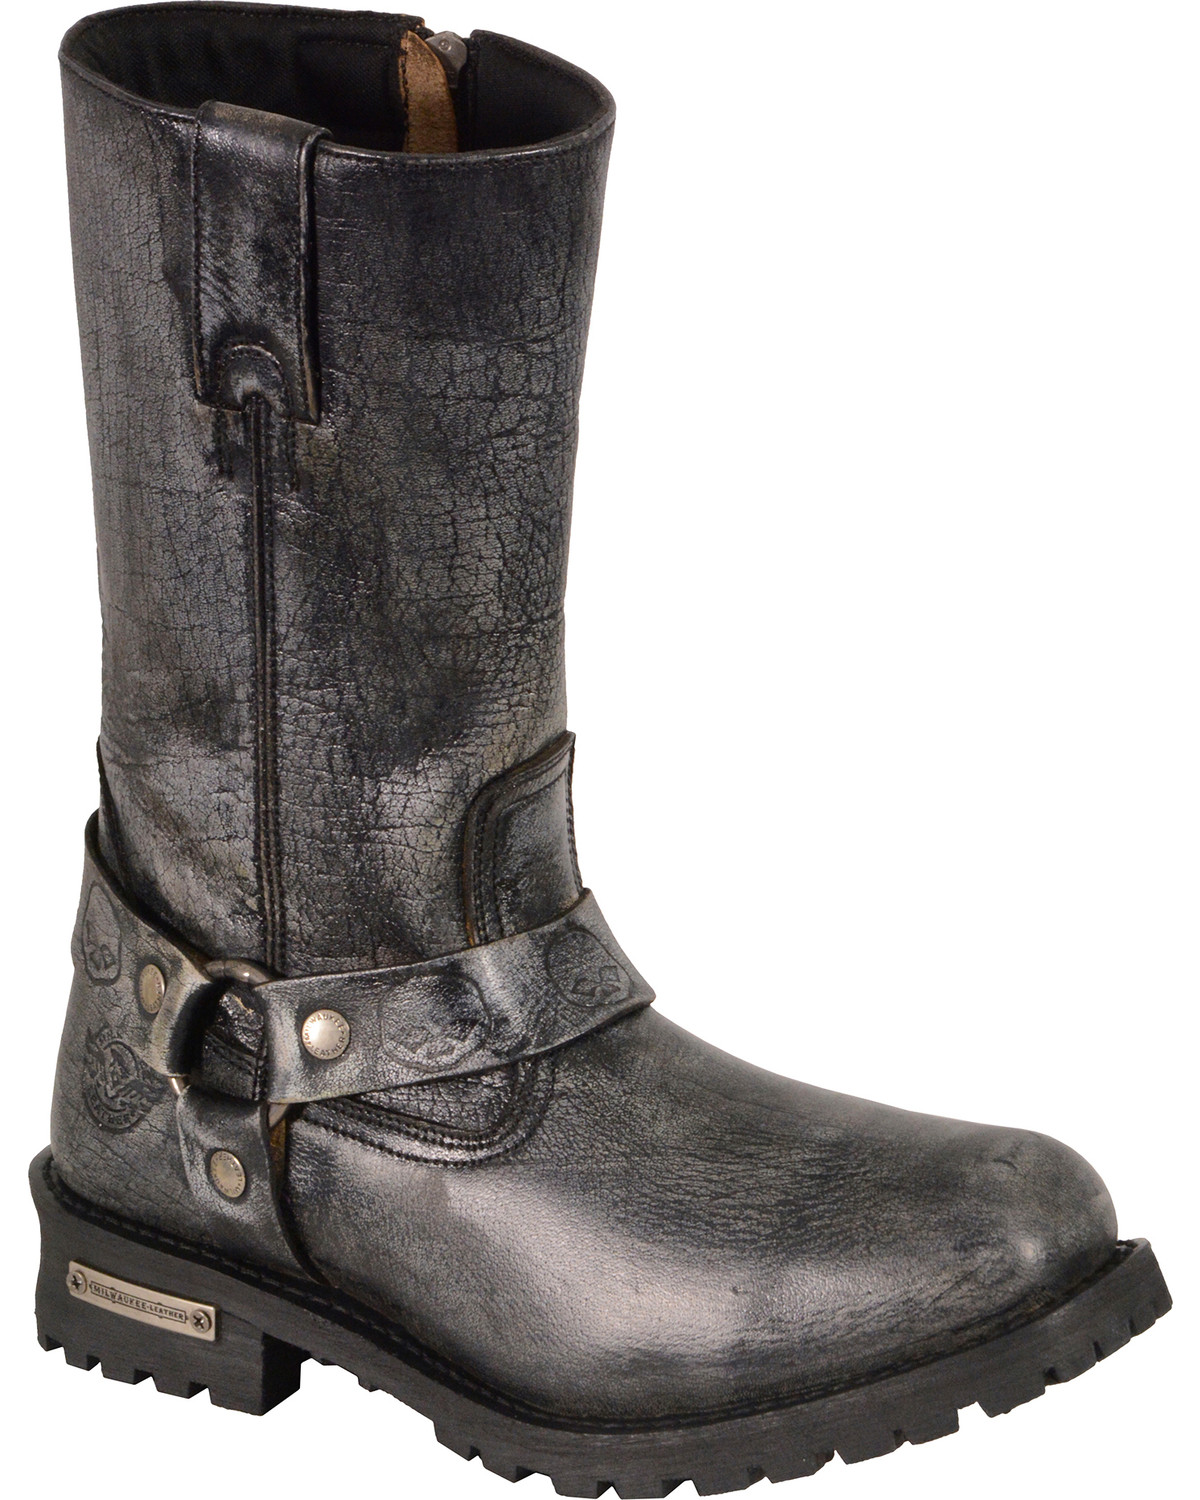 Black, Size 9.5 Milwaukee Leather Mens Classic Boots with Buckle Detail